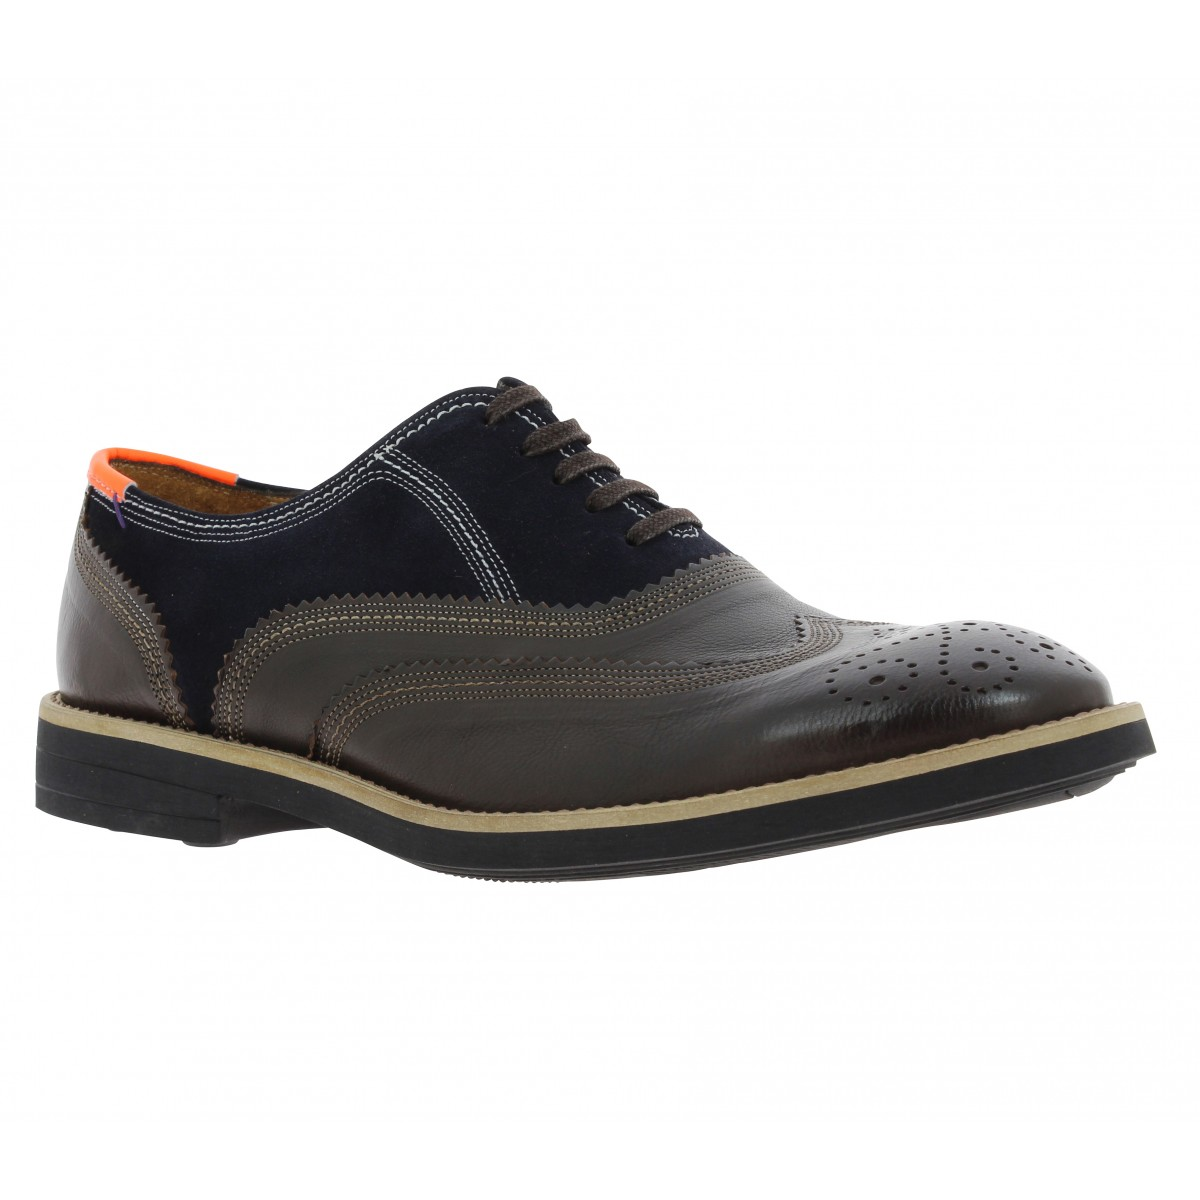 Chaussures à lacets PAUL SMITH Baer cuir Homme Marron